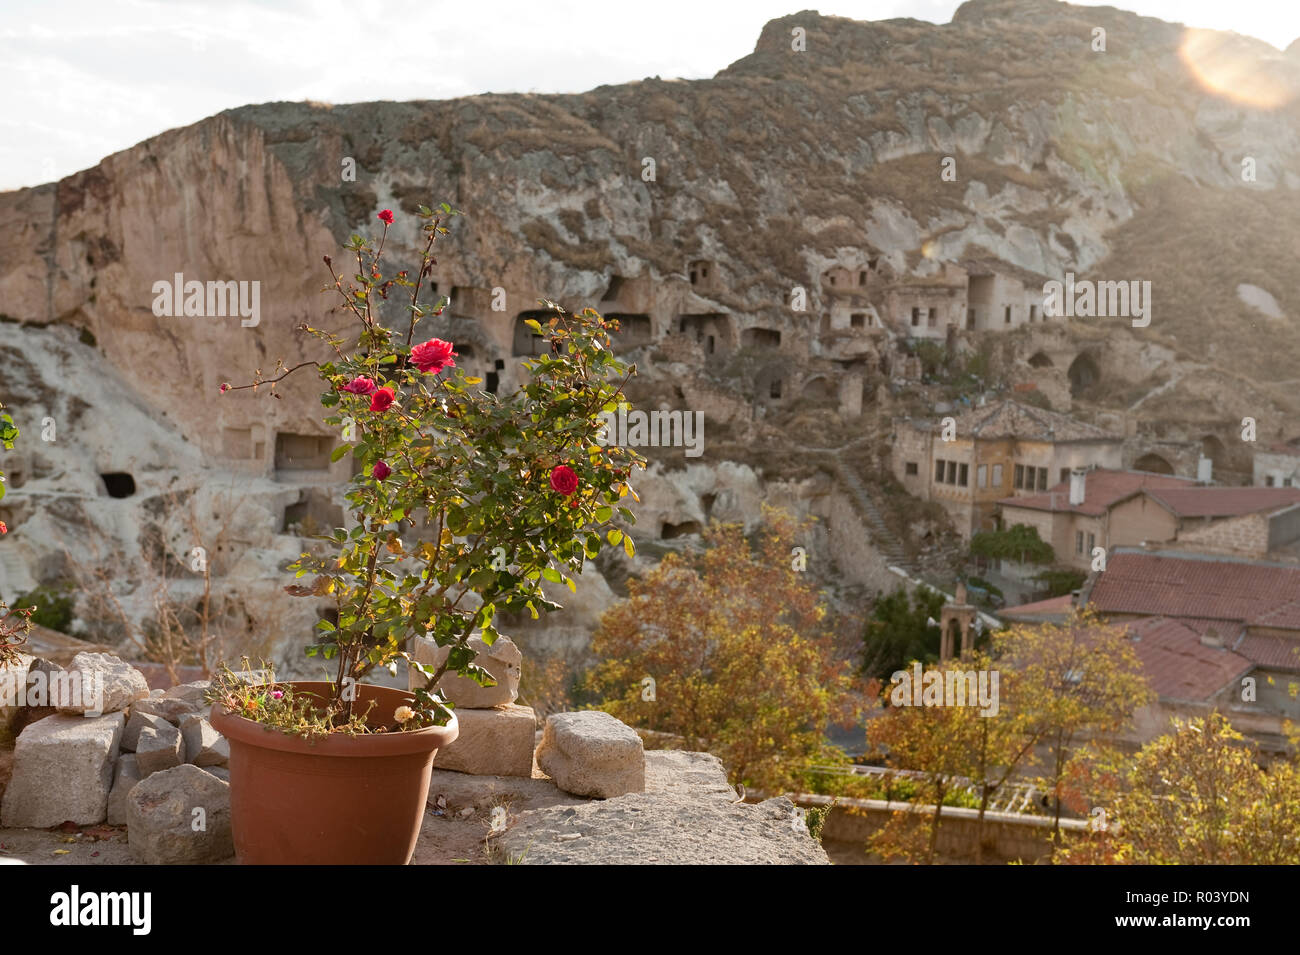 'Potted rose by cave dwellings in Urgup, Turkey' - Stock Image